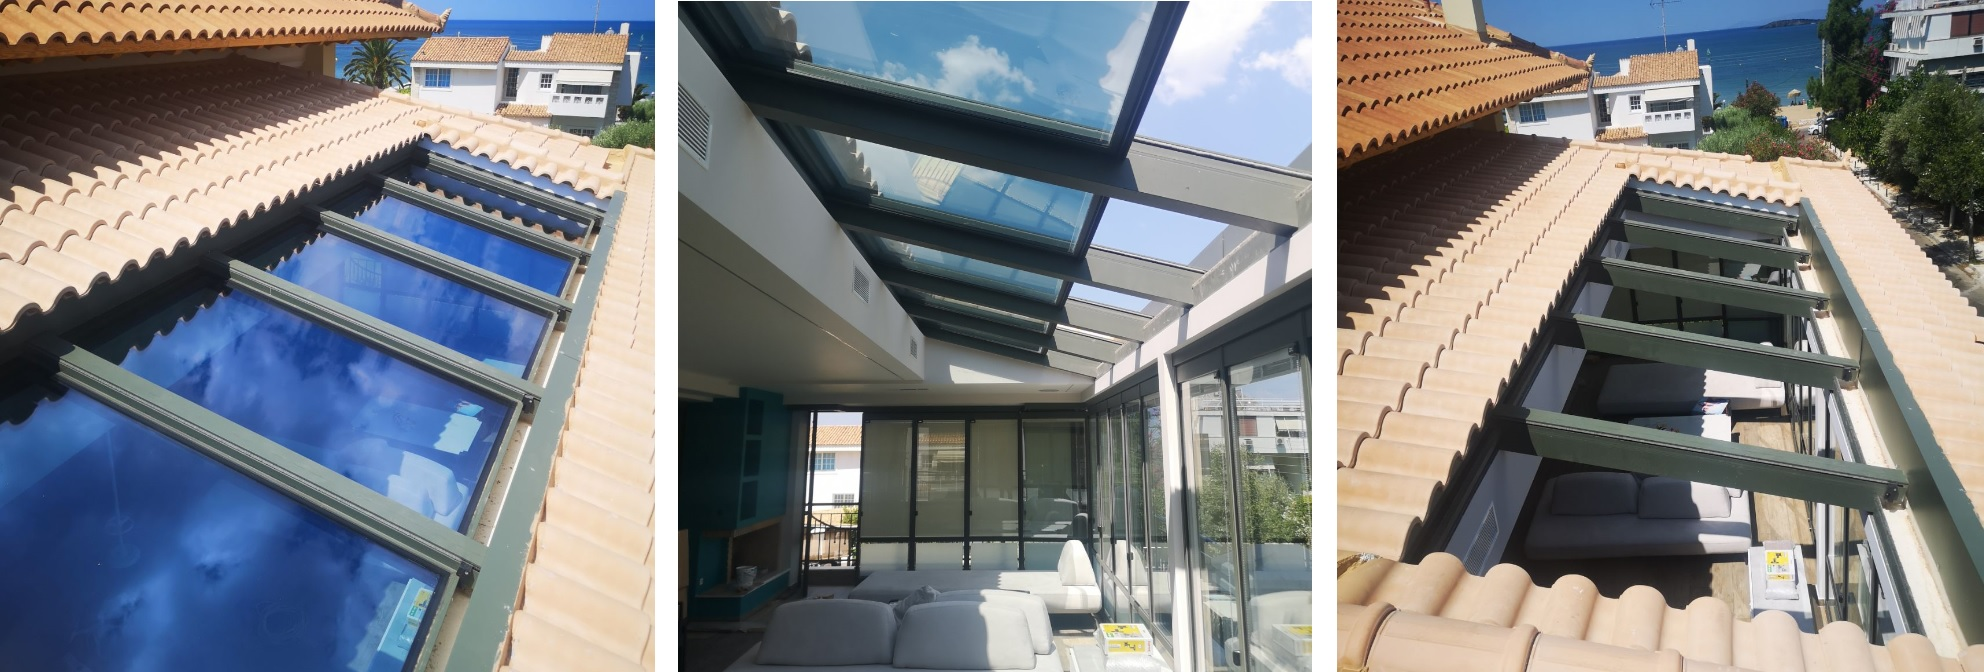 Glass Sliding Roof in combination with tiled roof